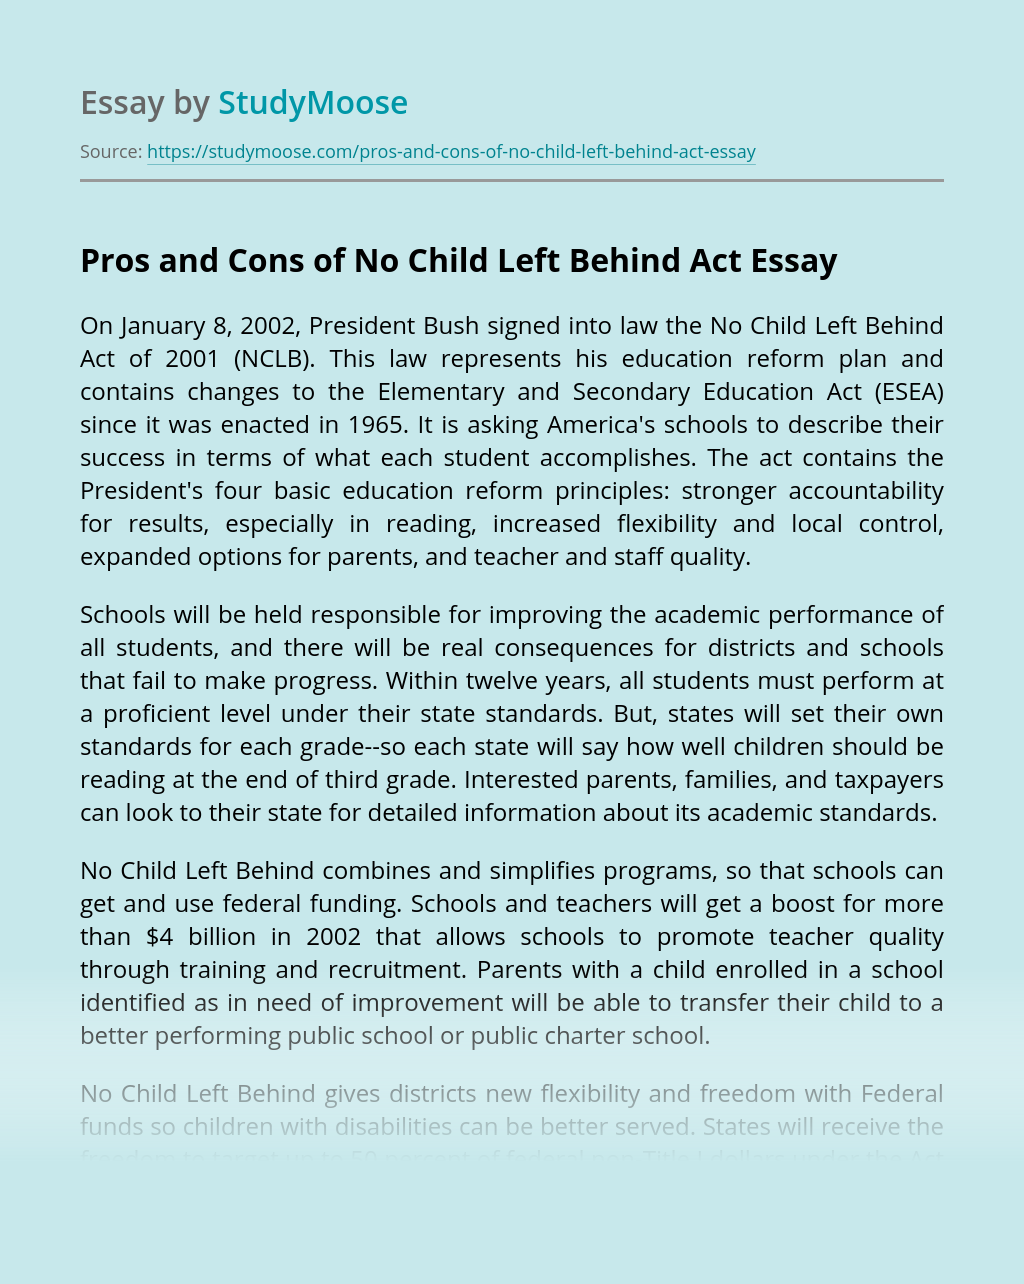 Pros and Cons of No Child Left Behind Act